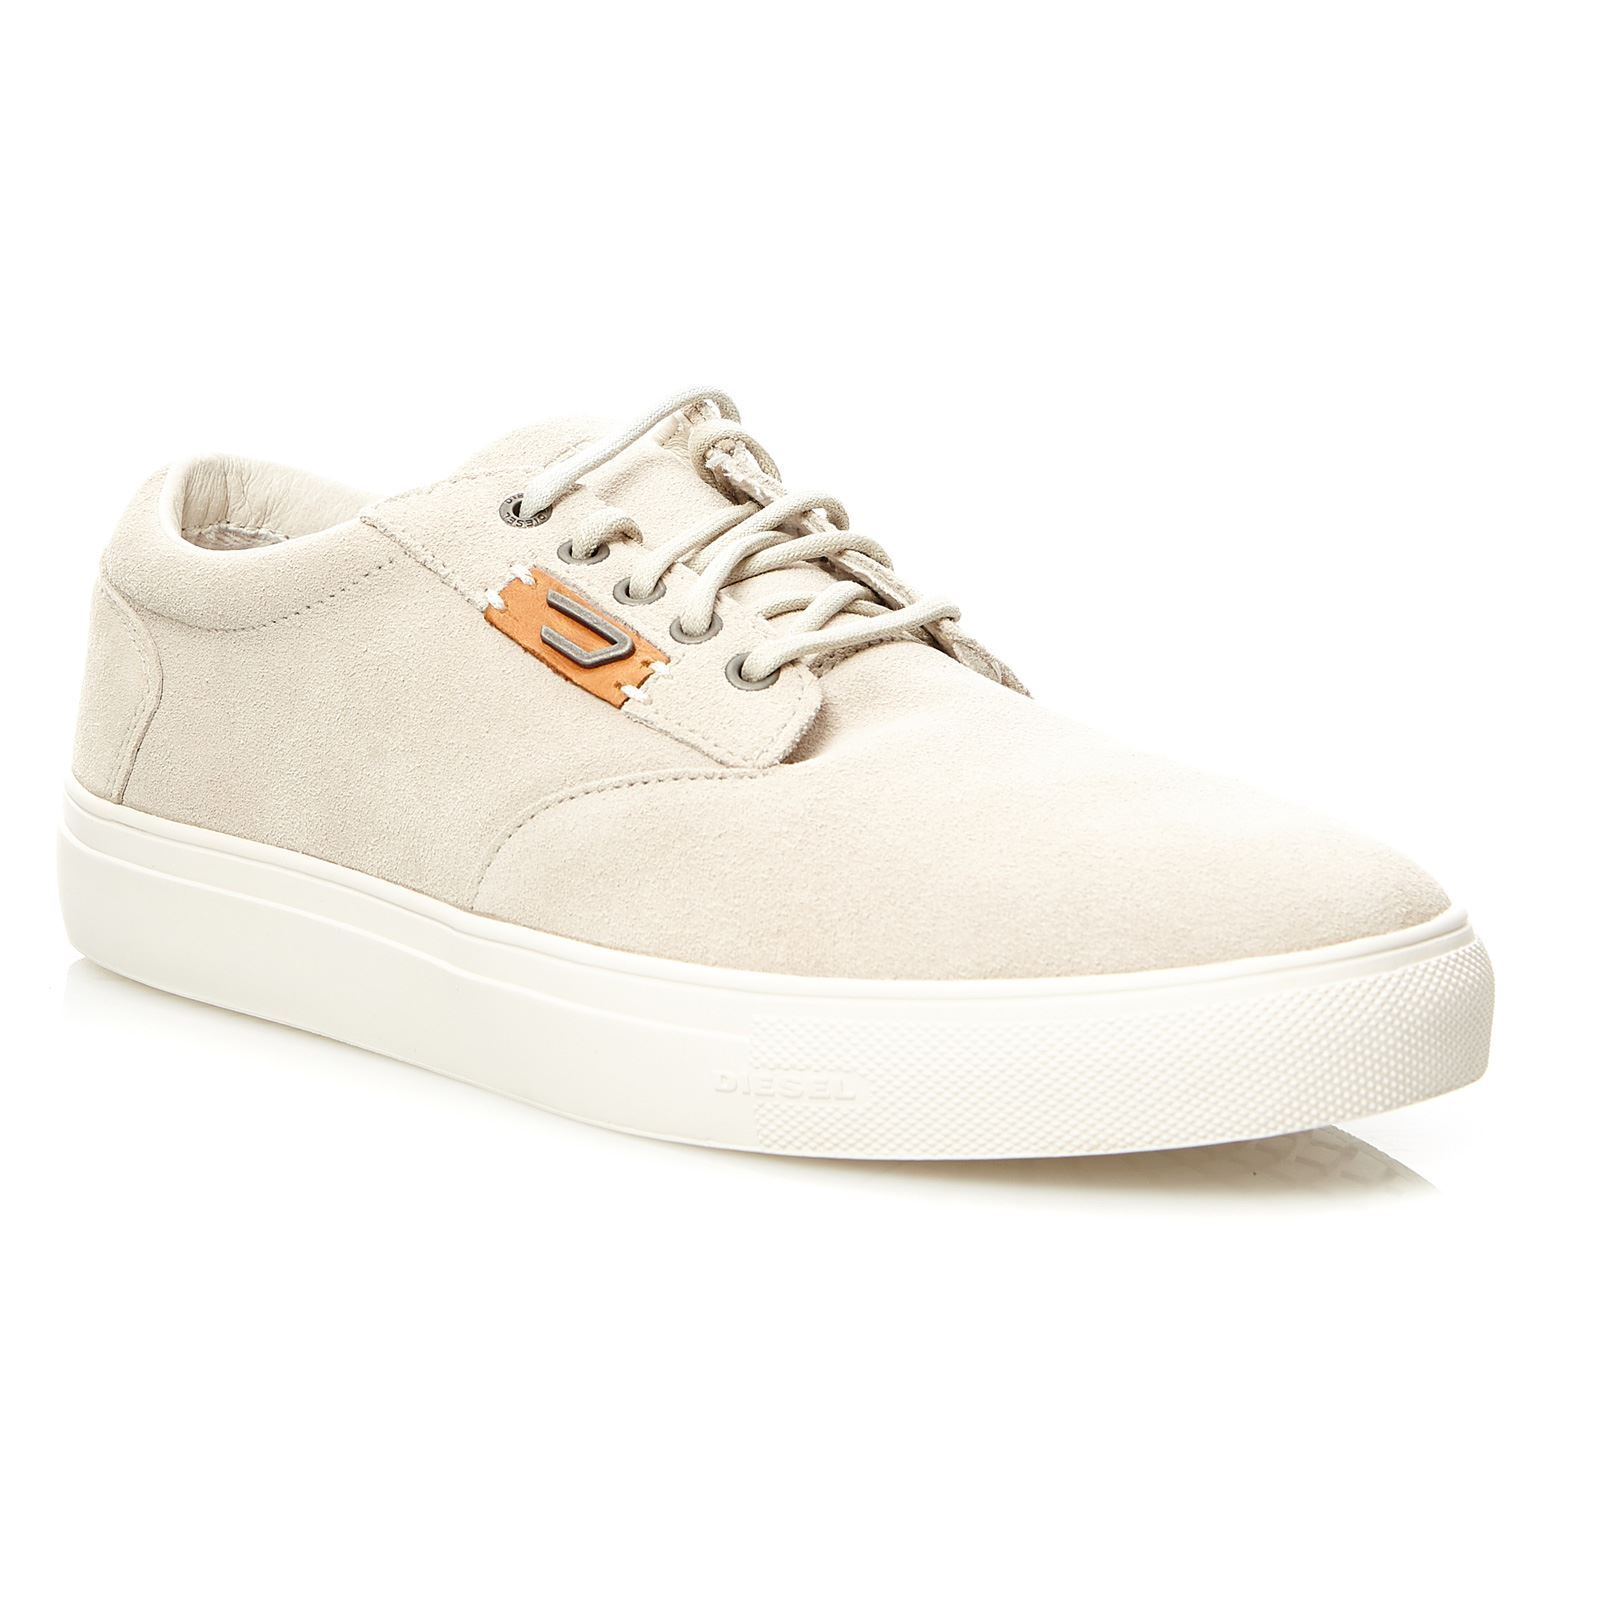 Diesel Baskets, Sneakers - gris clair